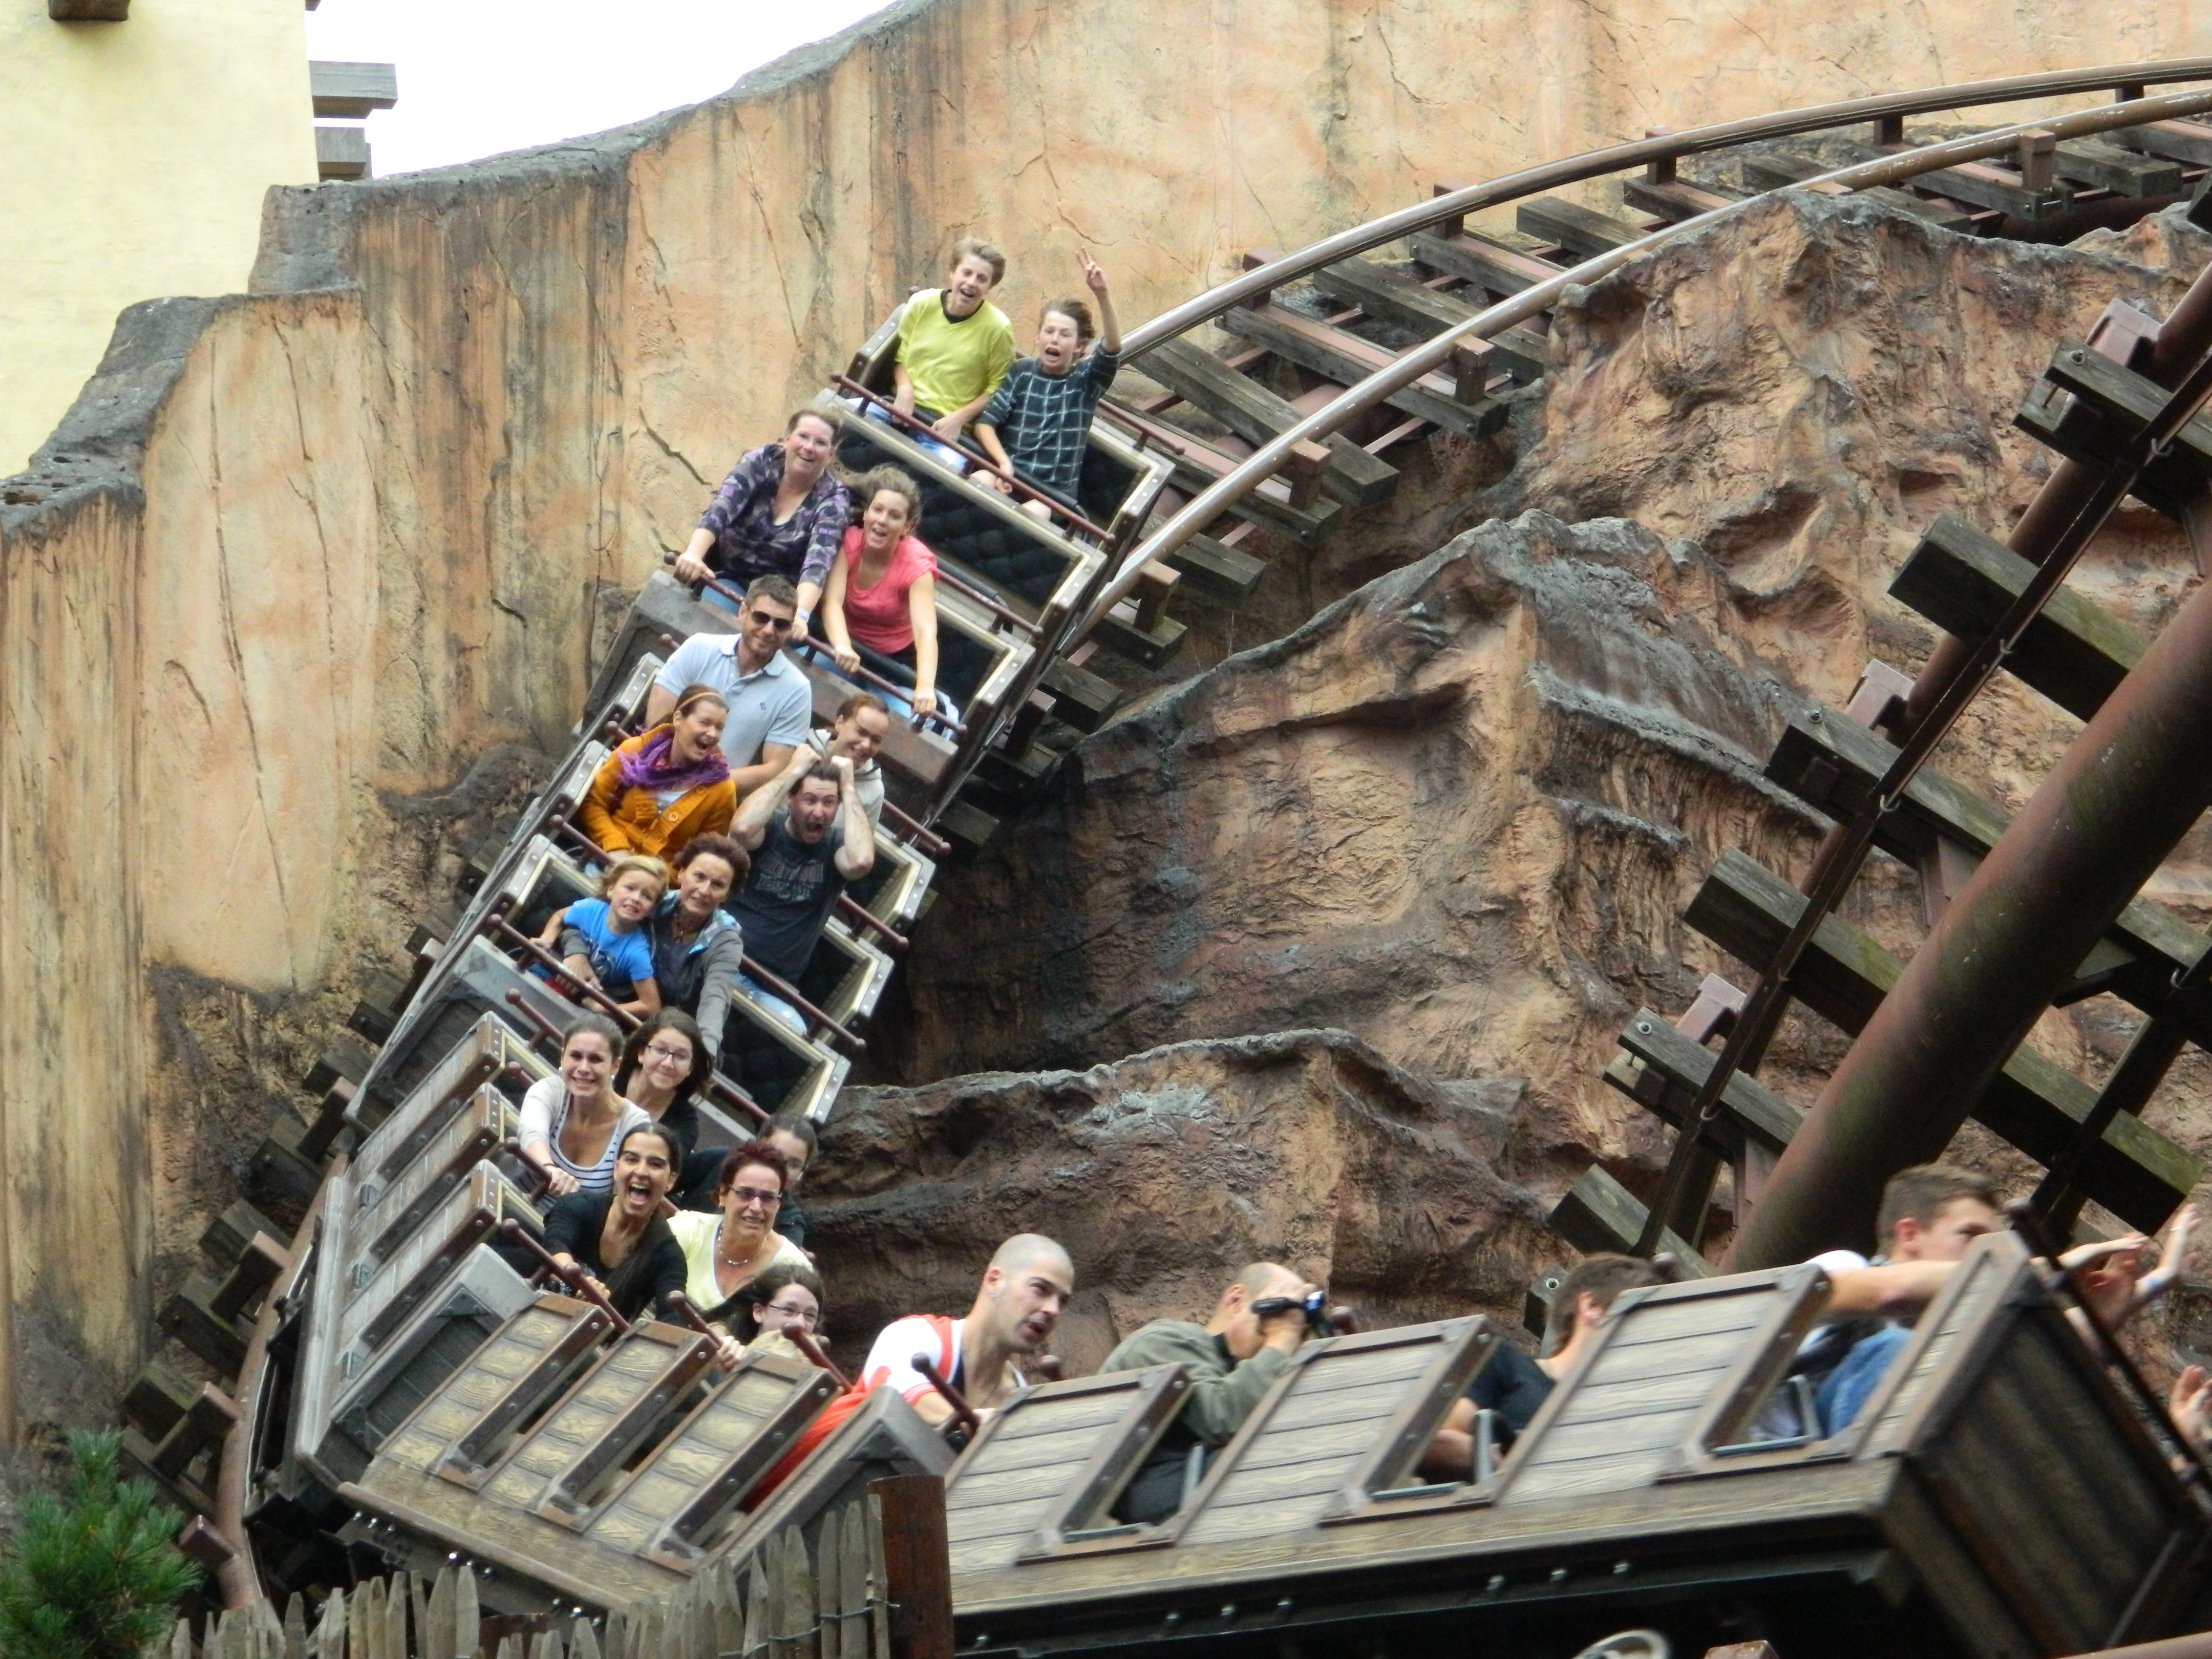 Colorado Adventure in Phantasialand Bruhl